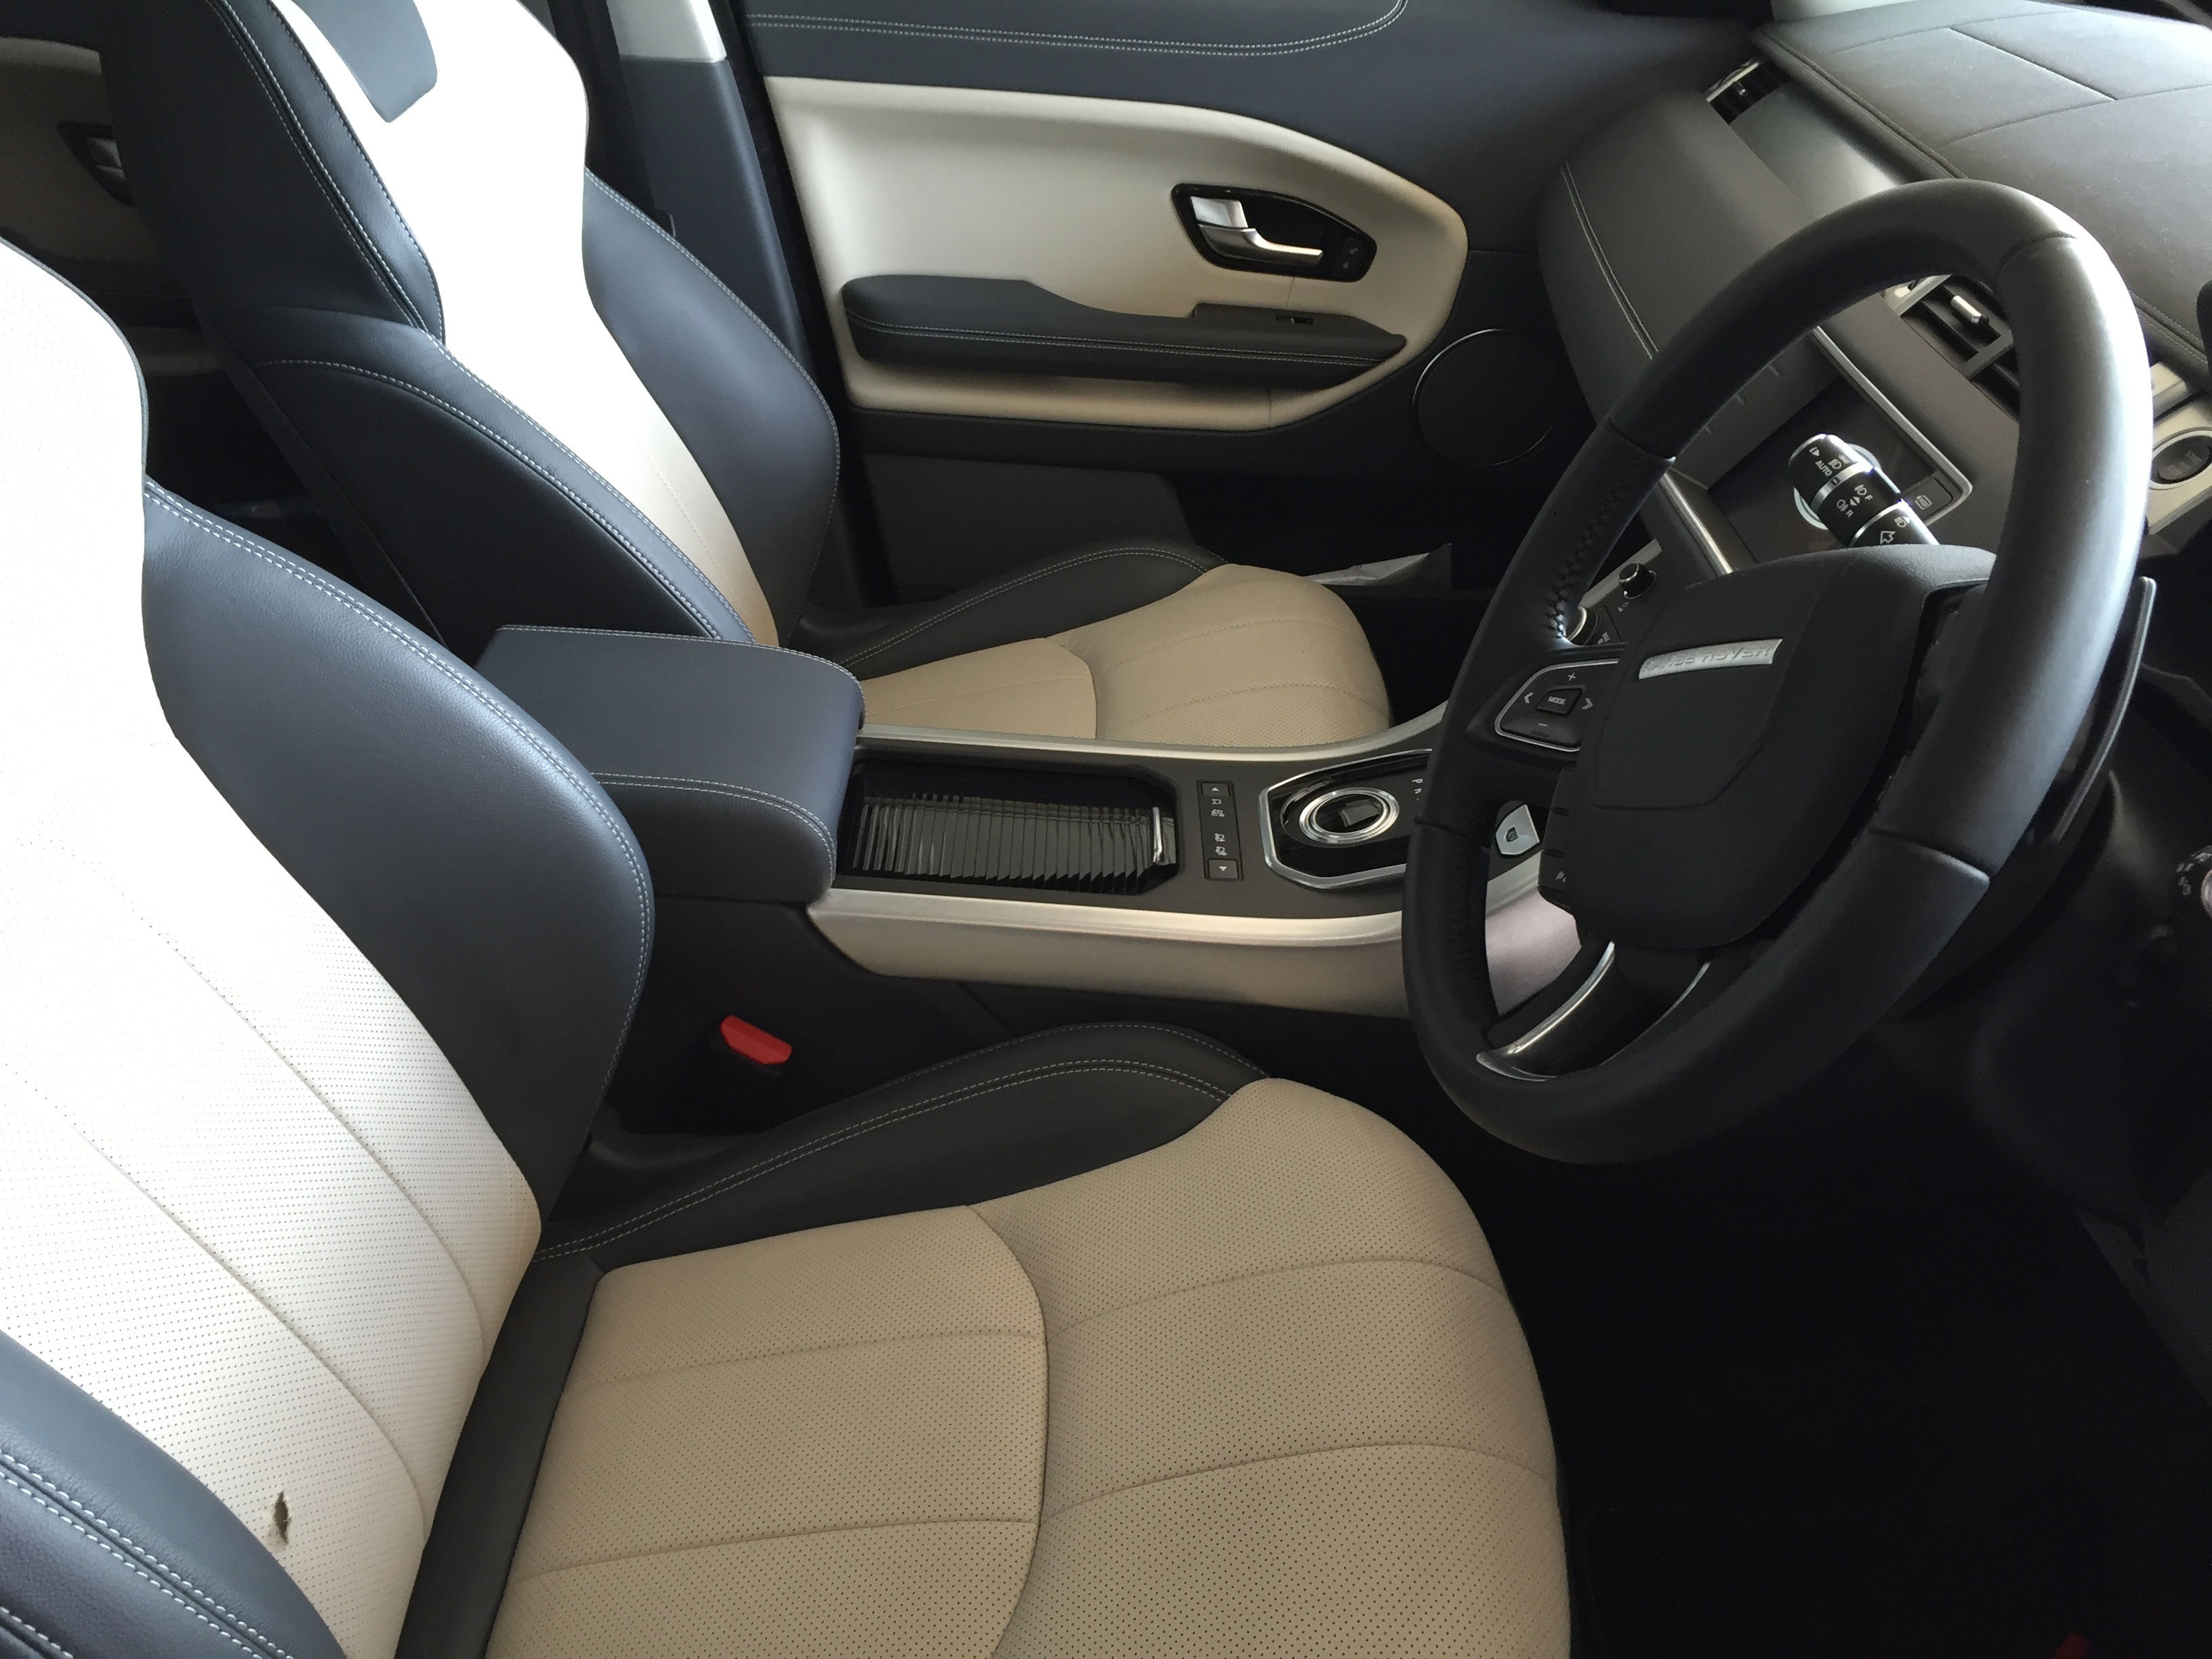 6 month old Range Rover Evoque Leather Damage - before